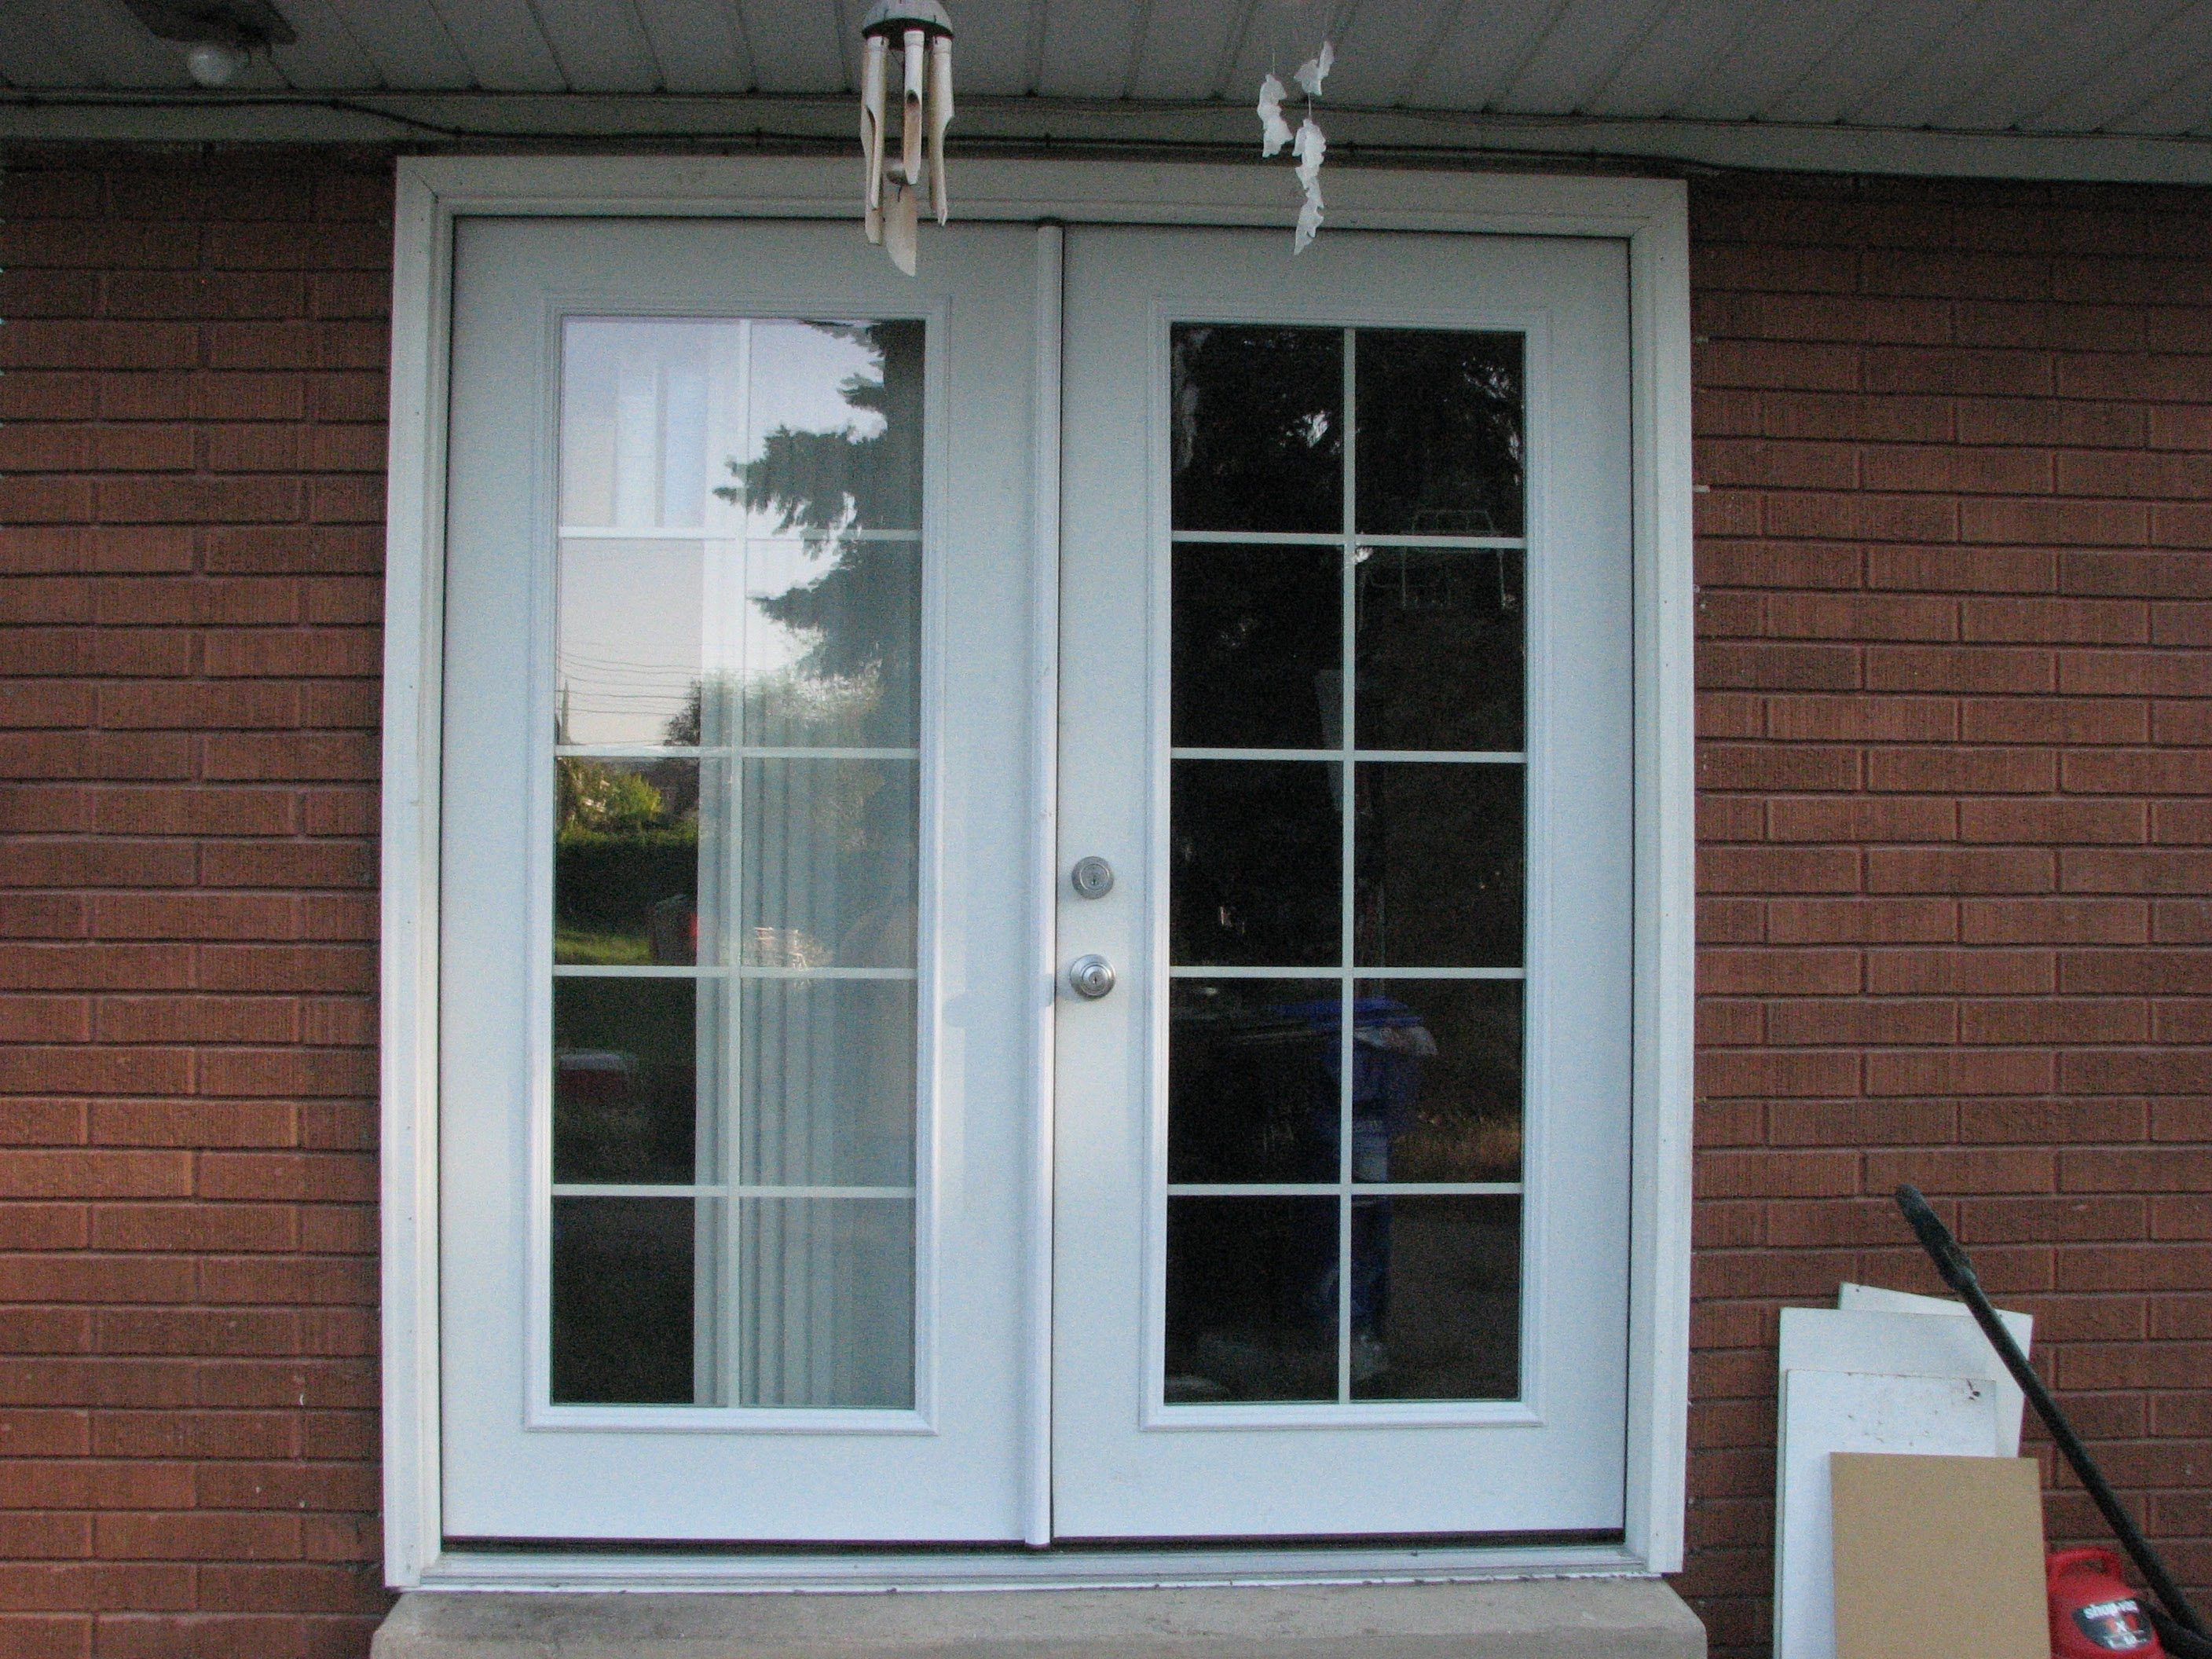 How To Install A Patio Door French Patio Doors Off Of Dining Room